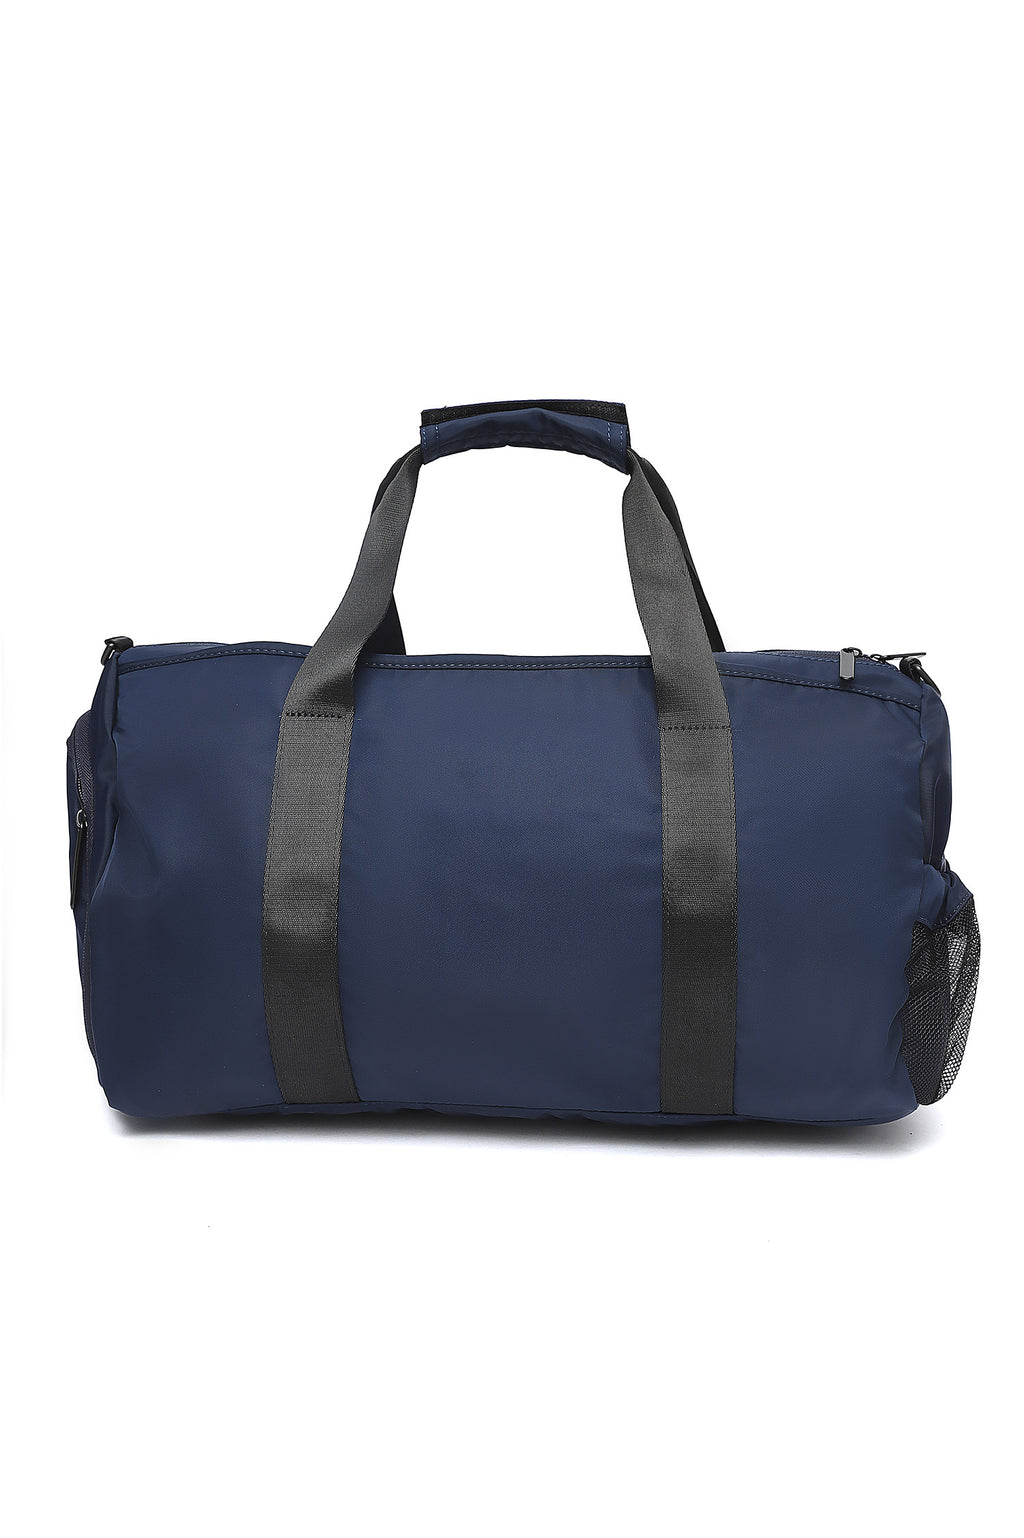 MAGIC DUFFLE-BLUE